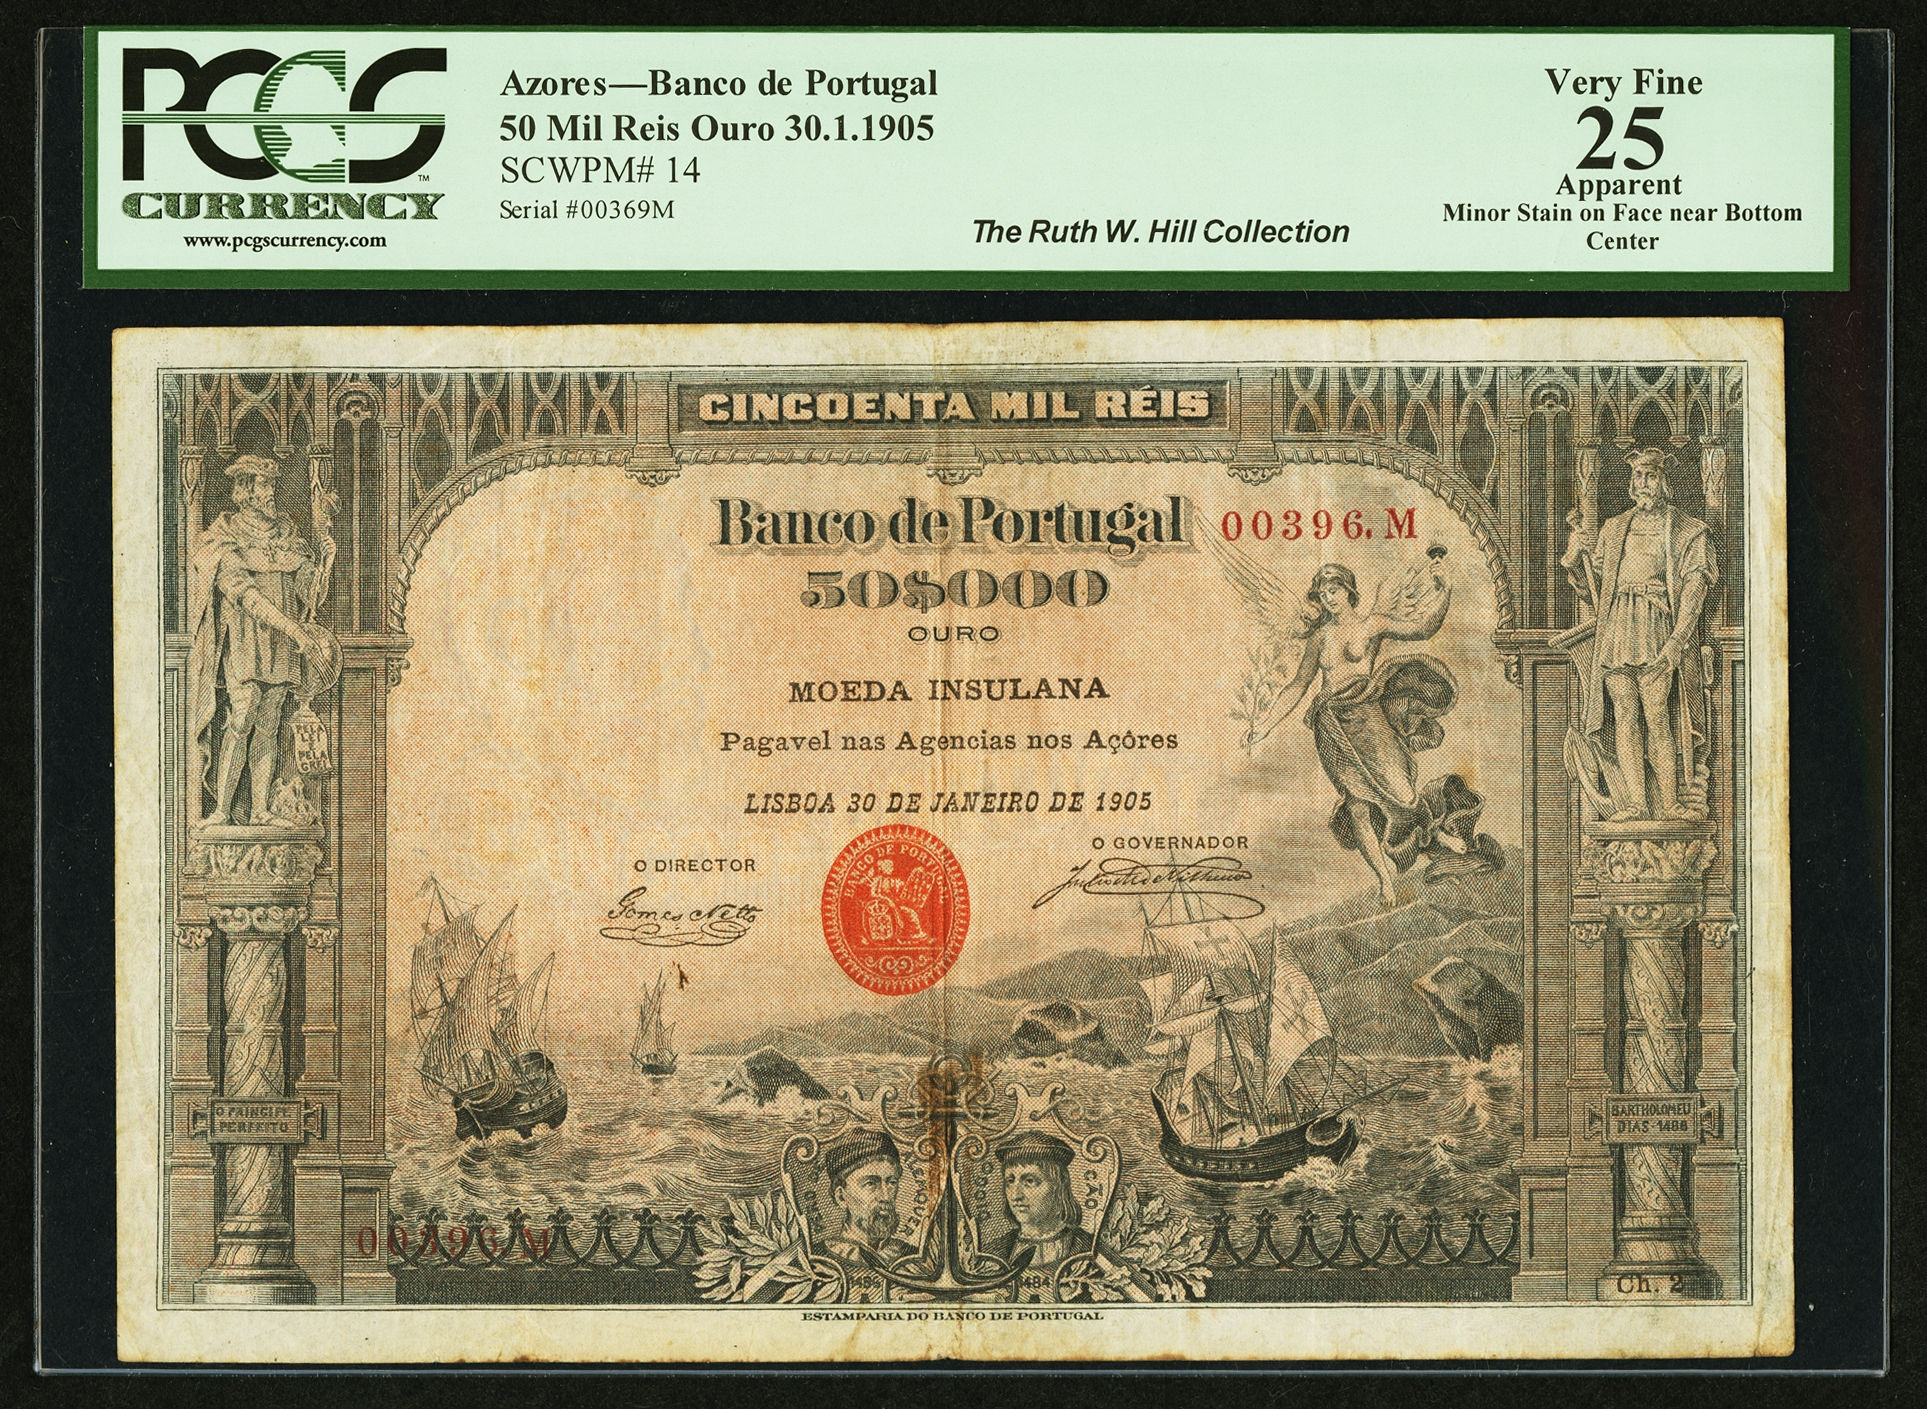 Plain would not be the way to describe the design on the face of a very rare 1905 Bank of Portugal 50-mil reis ouro note issued for the Azores. It's an exotic design from an exotic place. The Azores is a group of nine volcanic islands in the North Atlantic Ocean.